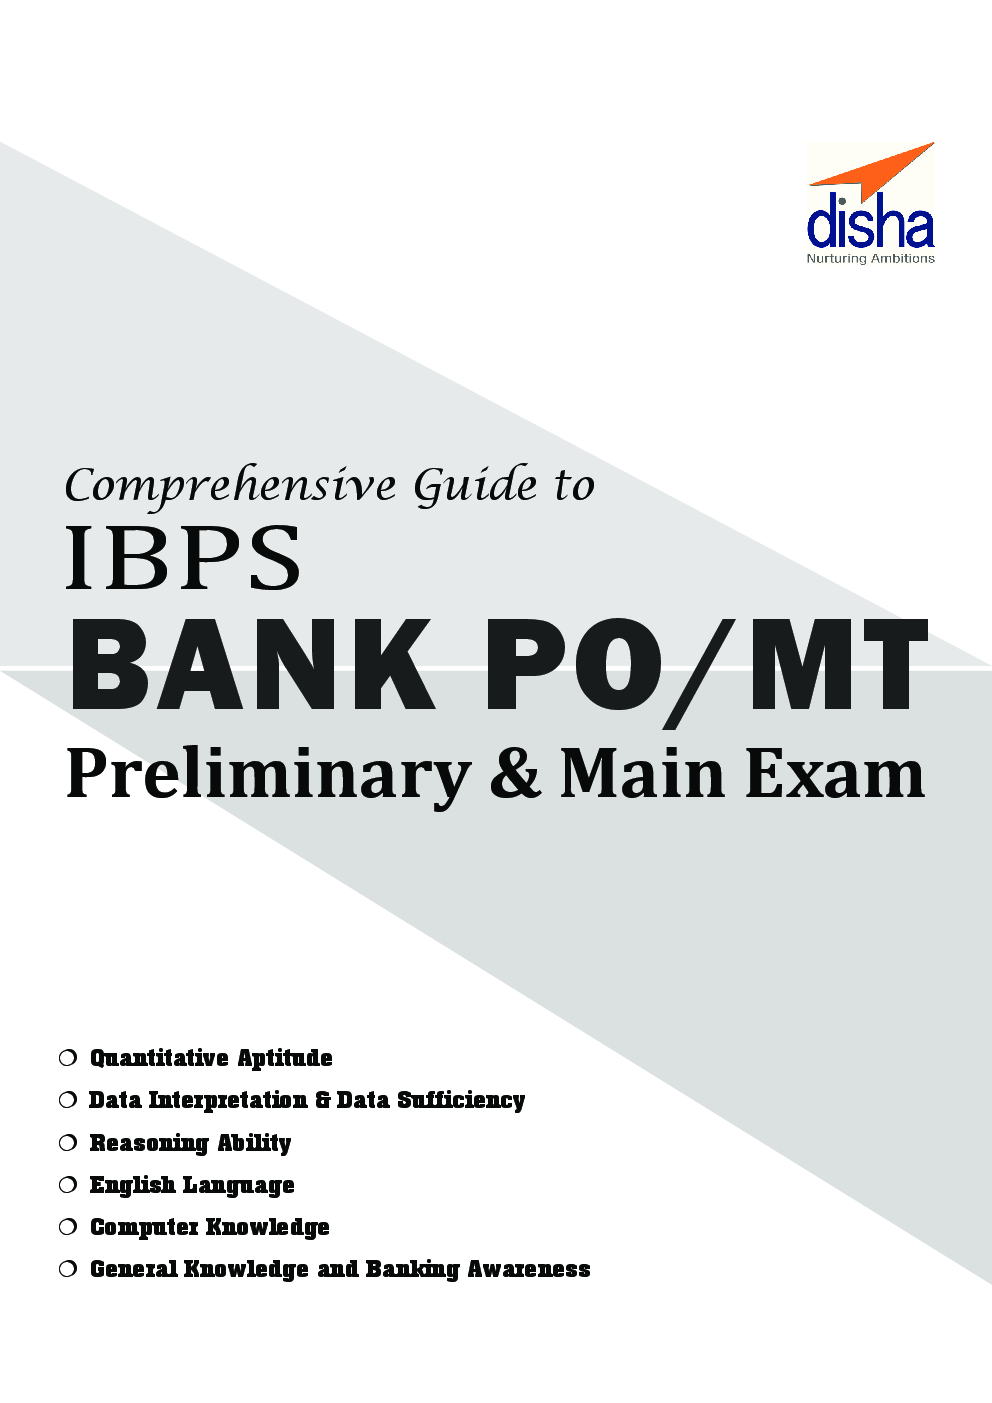 Mock Test | Books online | Test series for IIBF-JAIIB ...